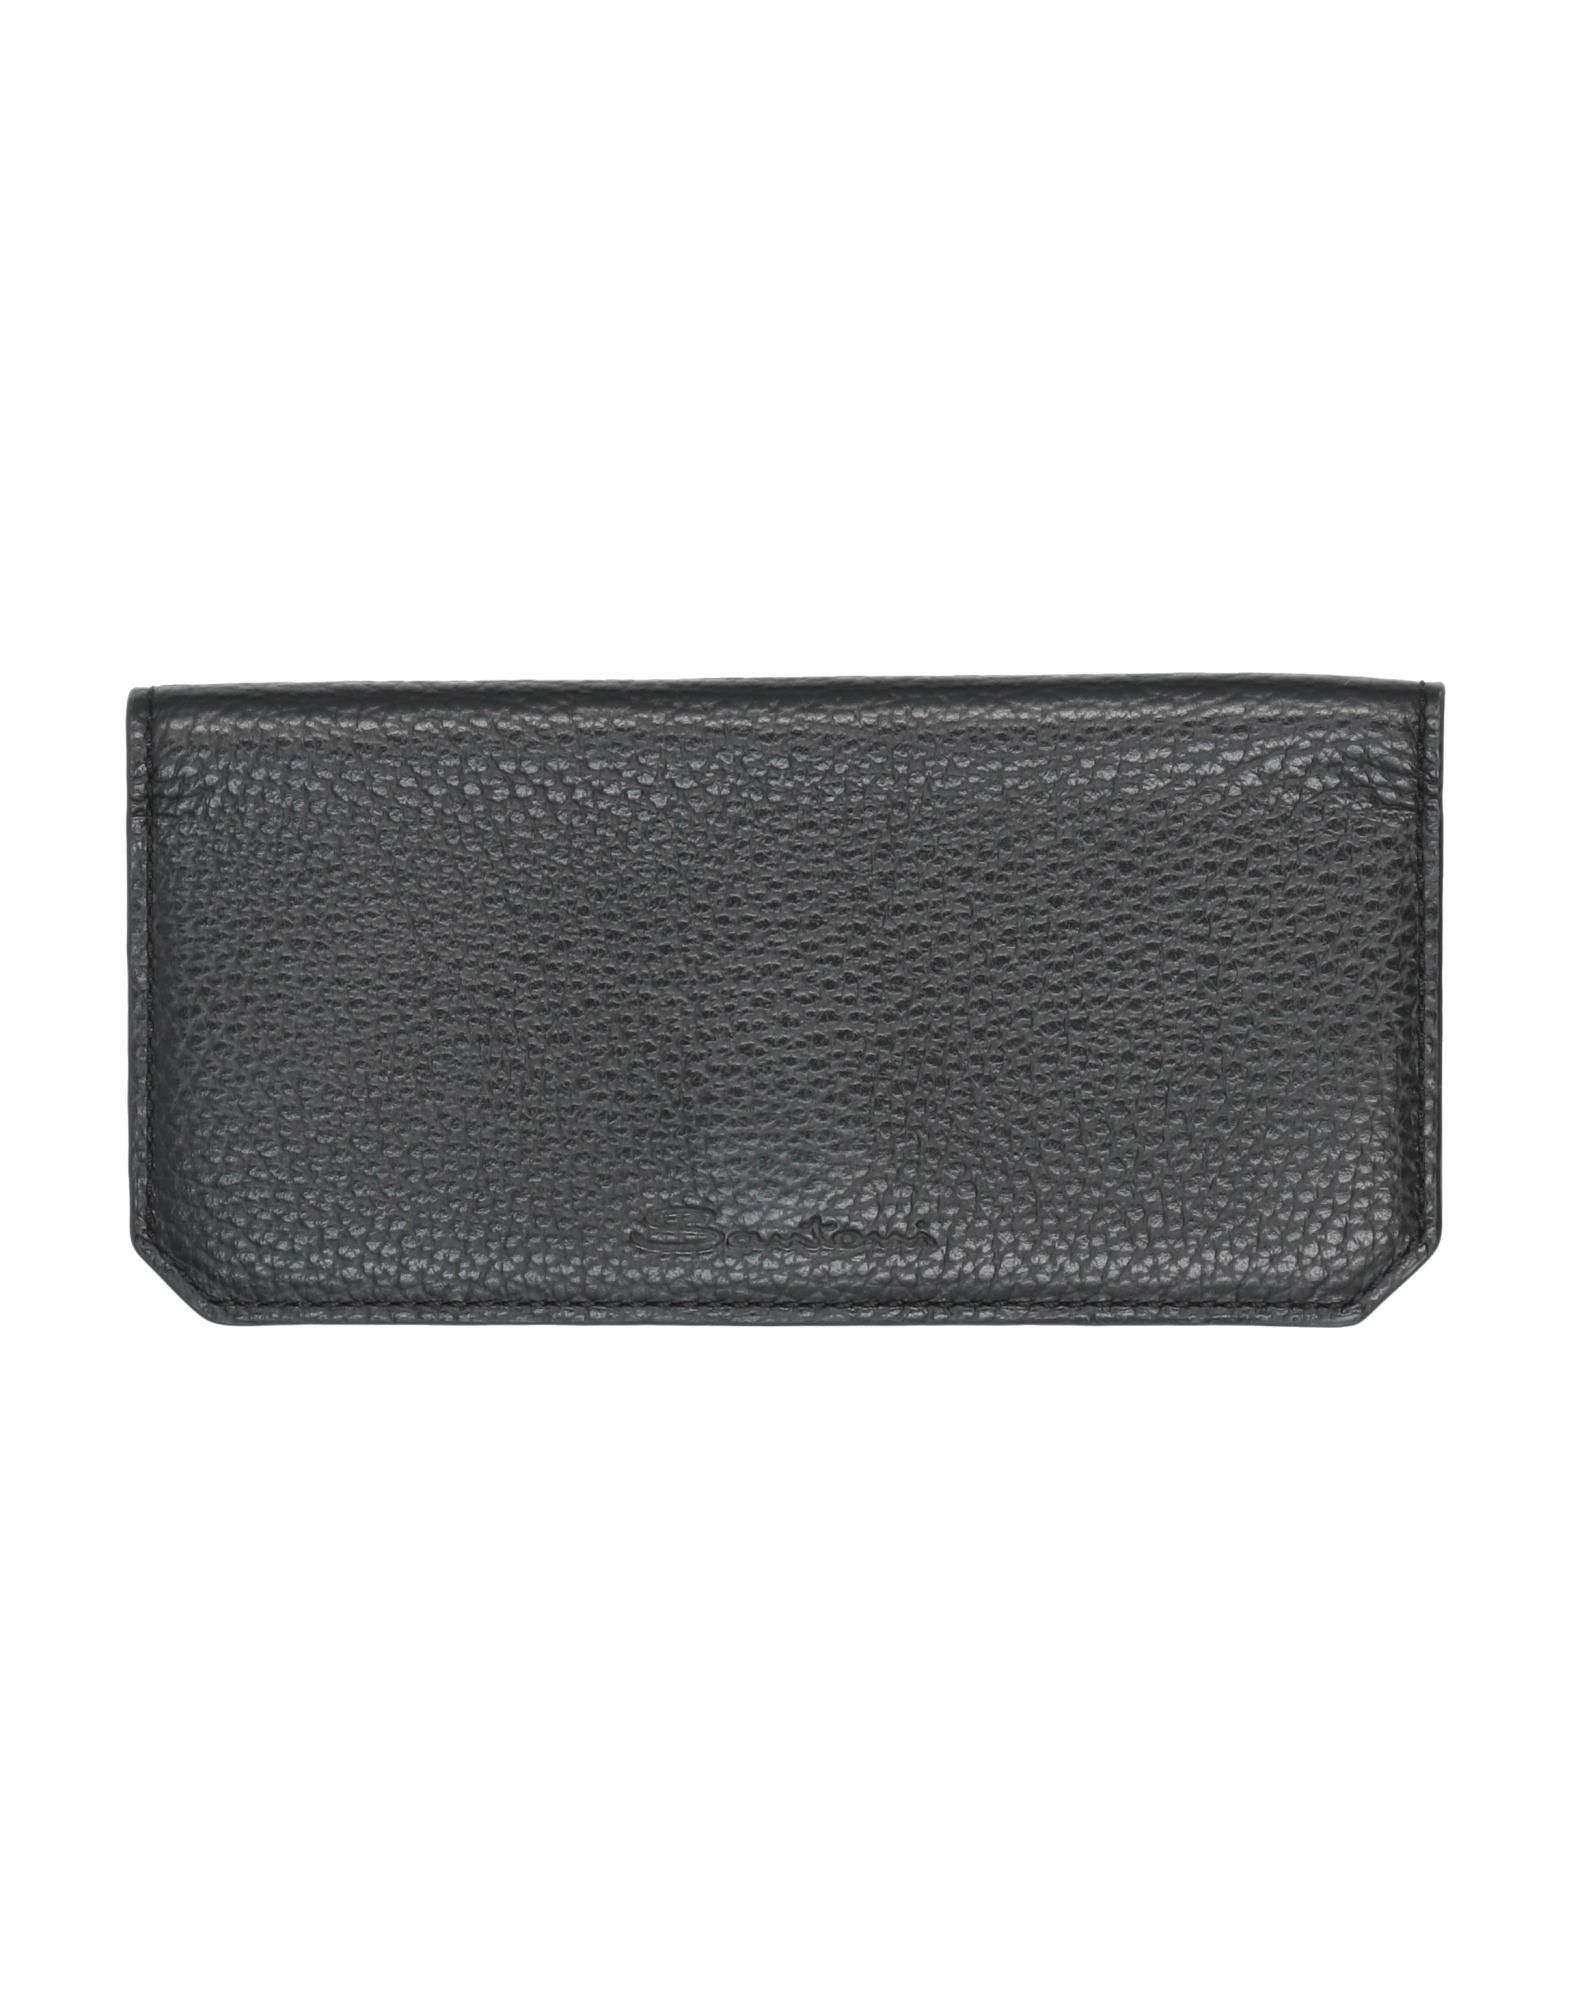 SANTONI Checkbook holders. leather, textured leather, logo, solid color, magnetic fastening, leather lining, contains non-textile parts of animal origin. Soft Leather